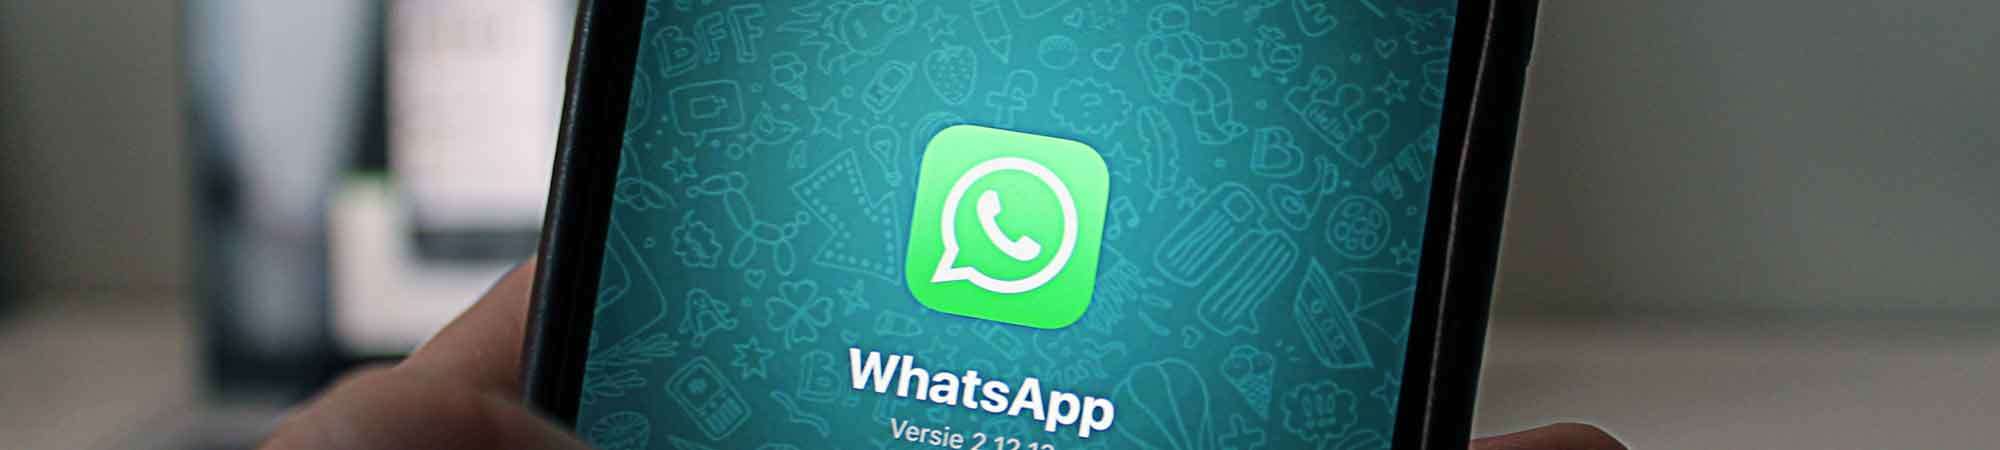 social media nieuws via whatsapp